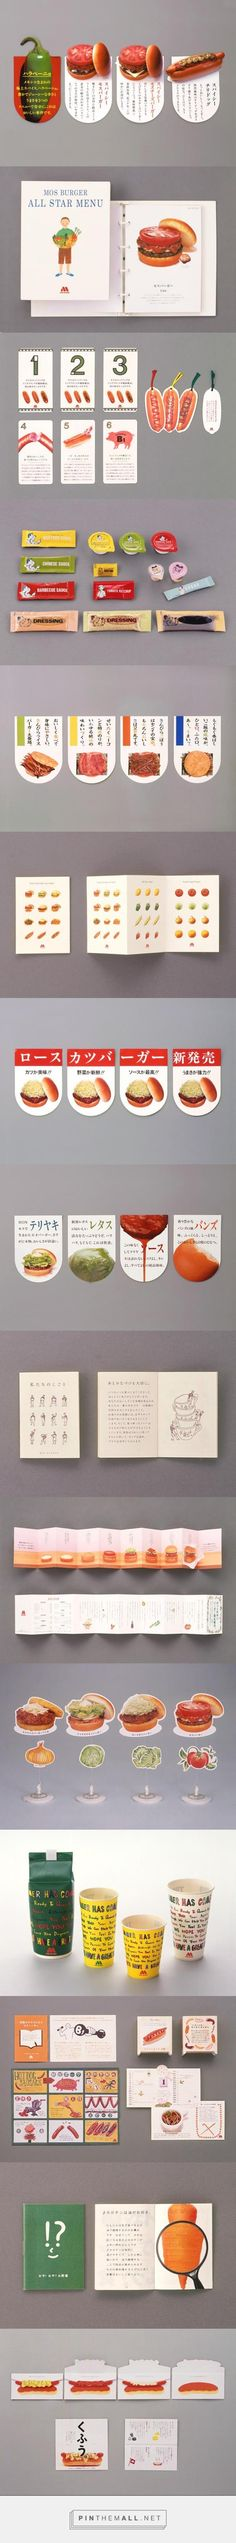 mos burger packaging looks awesome. who's had one? PD  #加工 #店内ツール                                                                                                                                                                                 もっと見る